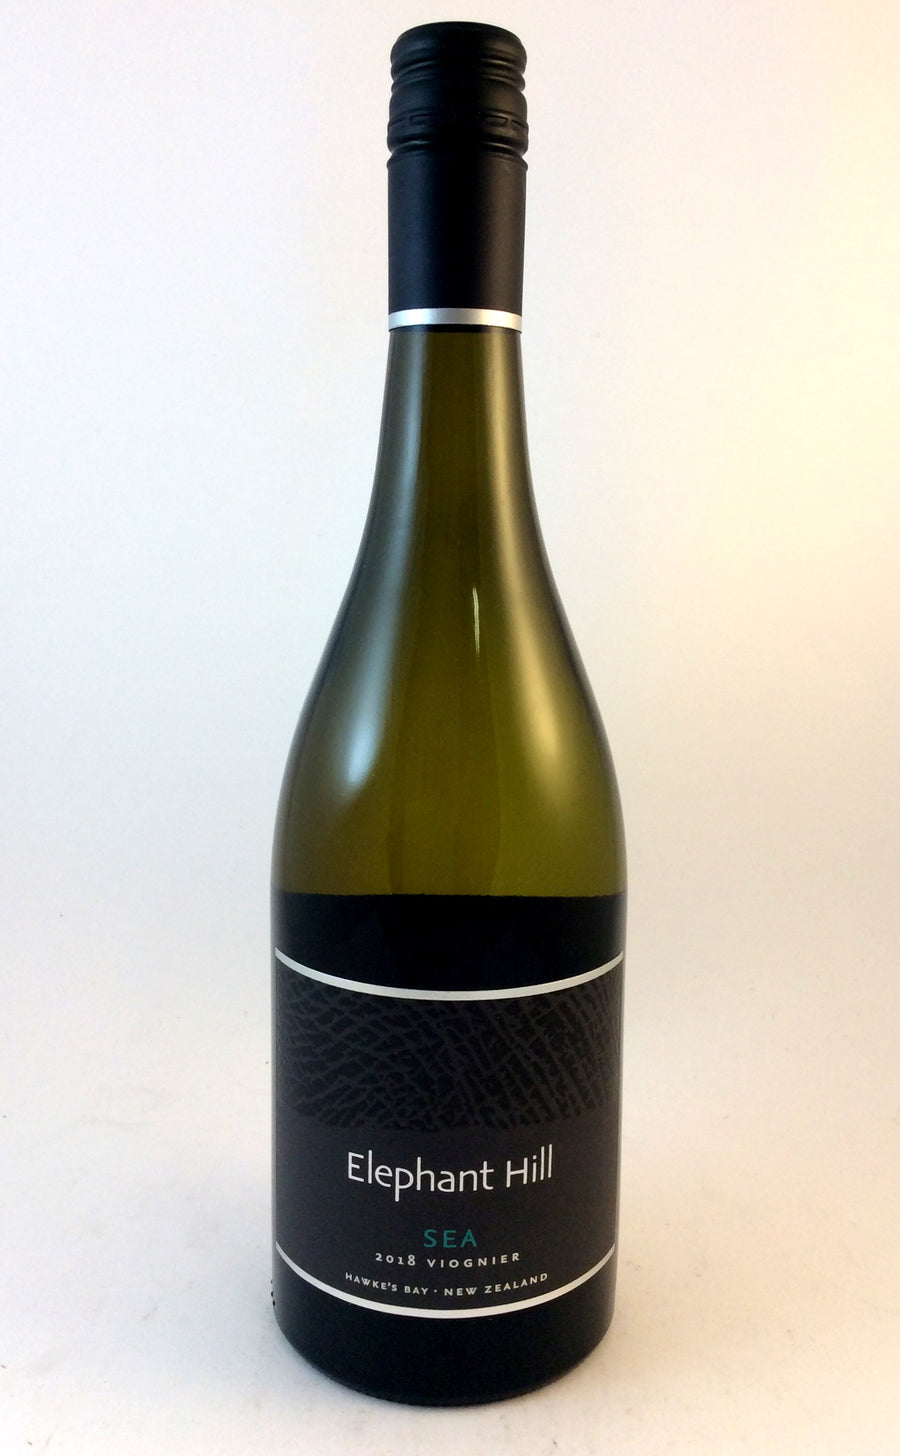 Elephant Hill Sea Viognier - Wineseeker